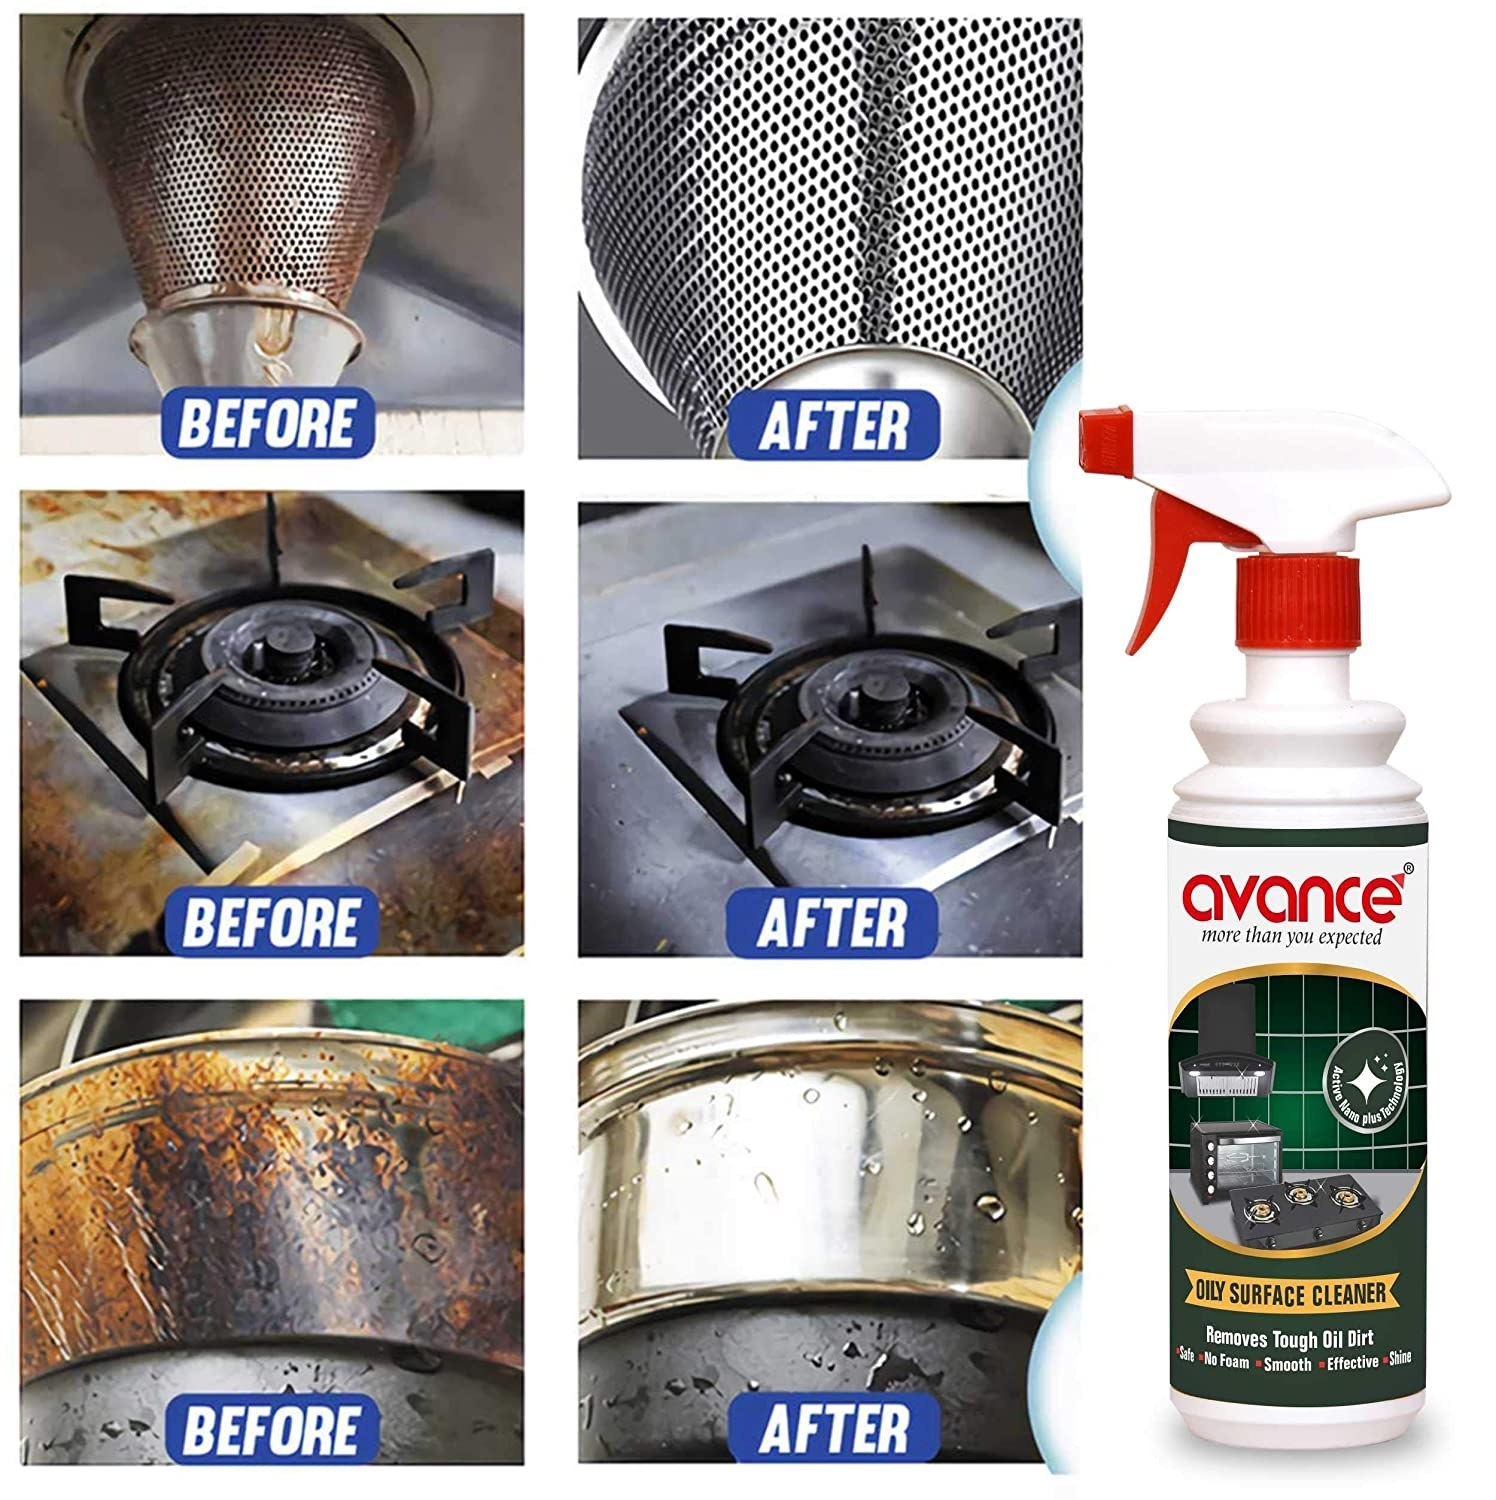 Before and after images of liquid cleaner effects on drains, utensils and gas.